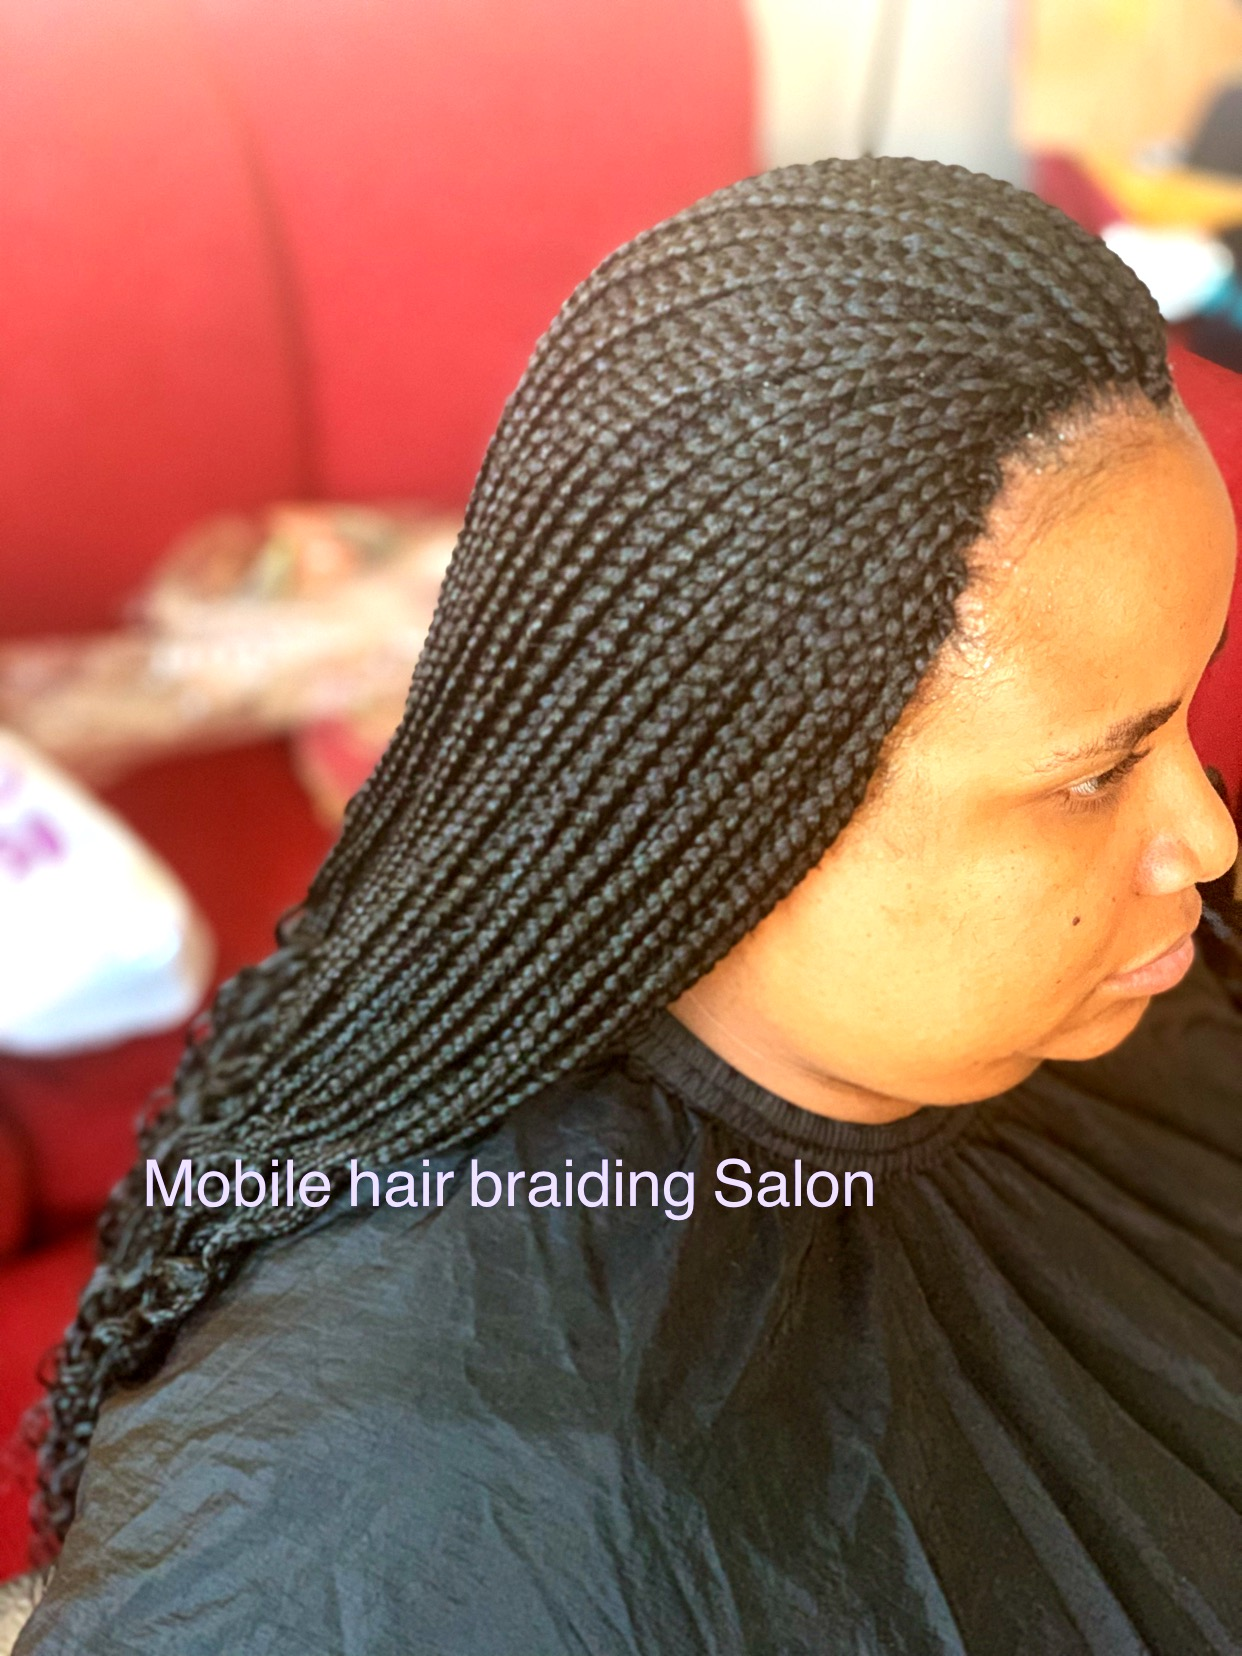 Braiding Hair Salon Braids Experts In Washington Dc Md Va Pob Salon